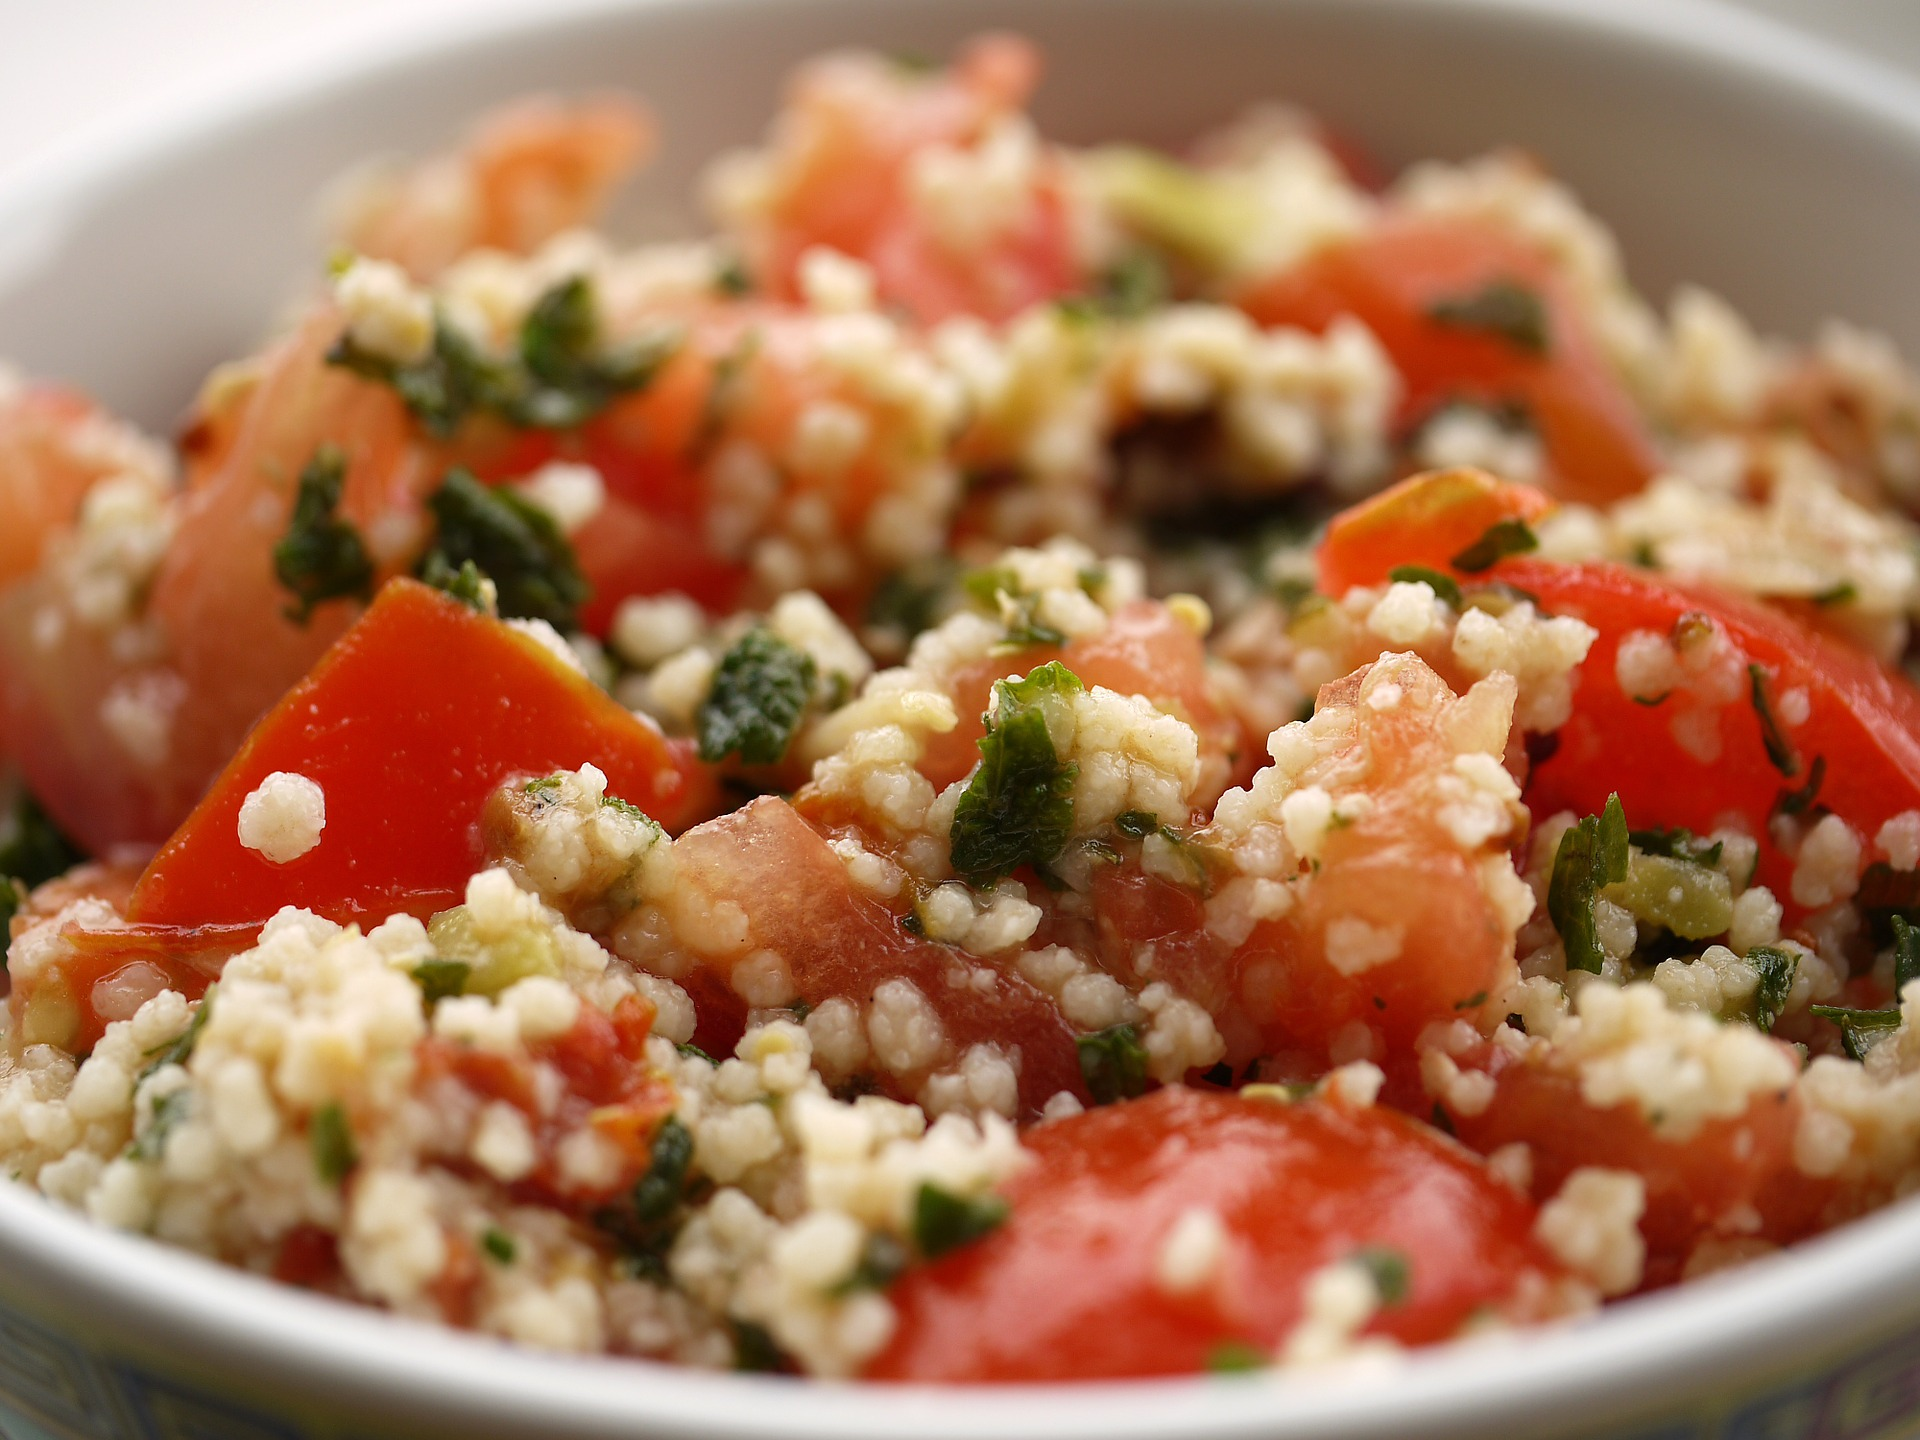 FIND OUT MORE ABOUT TABBOULEH SEASONING